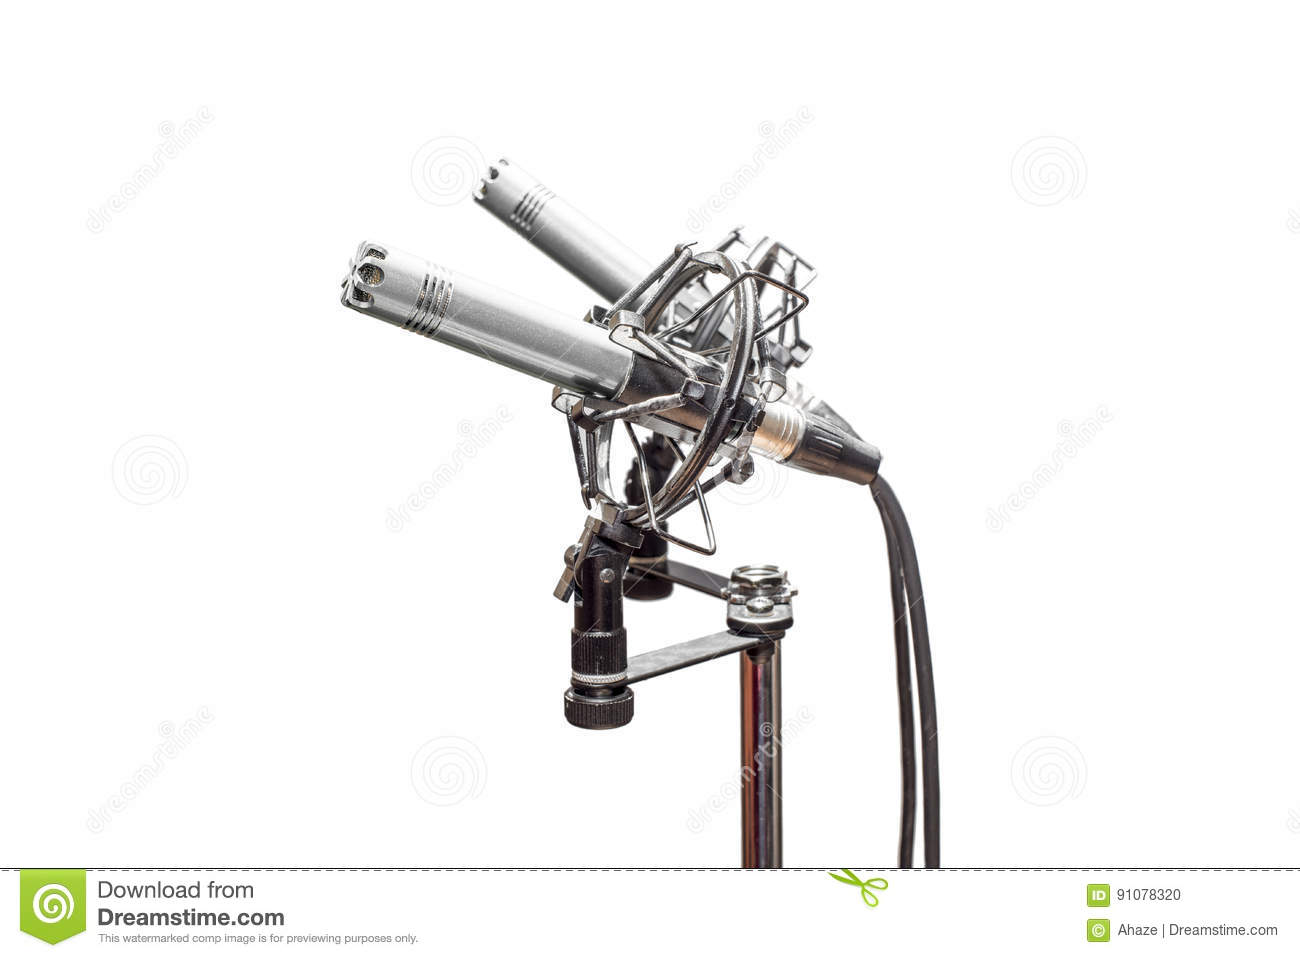 Stereo Condenser Microphones With Cables Shockmounts And Stand Microphone Ribbon Diagram Isolated On White